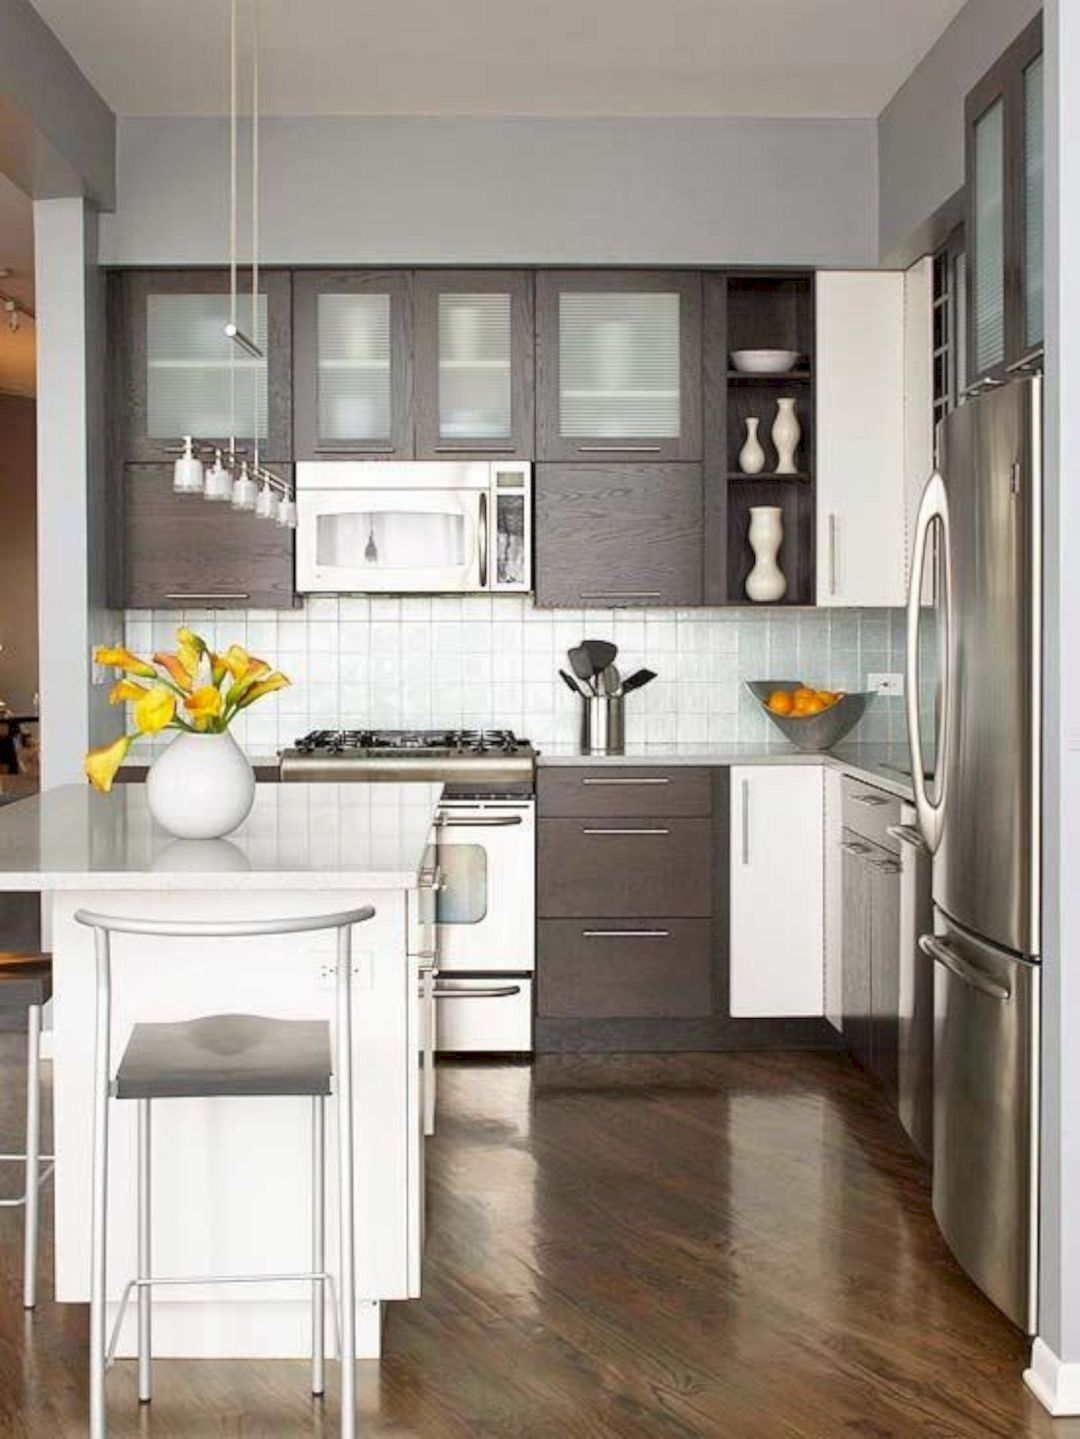 A Guide to Efficient Small Kitchen Design for Apartment | Gorgeous on small kitchen dining room, small kitchen entryway ideas, for small kitchens kitchen ideas, open kitchen dining room ideas, small breakfast area ideas, kitchen dining room remodeling ideas, kitchen dining design ideas, stylish kitchen dining ideas, small kitchen layout ideas, small kitchen breakfast ideas, traditional kitchen dining ideas, small kitchen seating ideas, spanish kitchen dining ideas, small kitchen hallway ideas, small kitchen room ideas, kitchen color ideas, small kitchen food ideas, small kitchen accent wall ideas, small kitchen dining area, small front ideas,